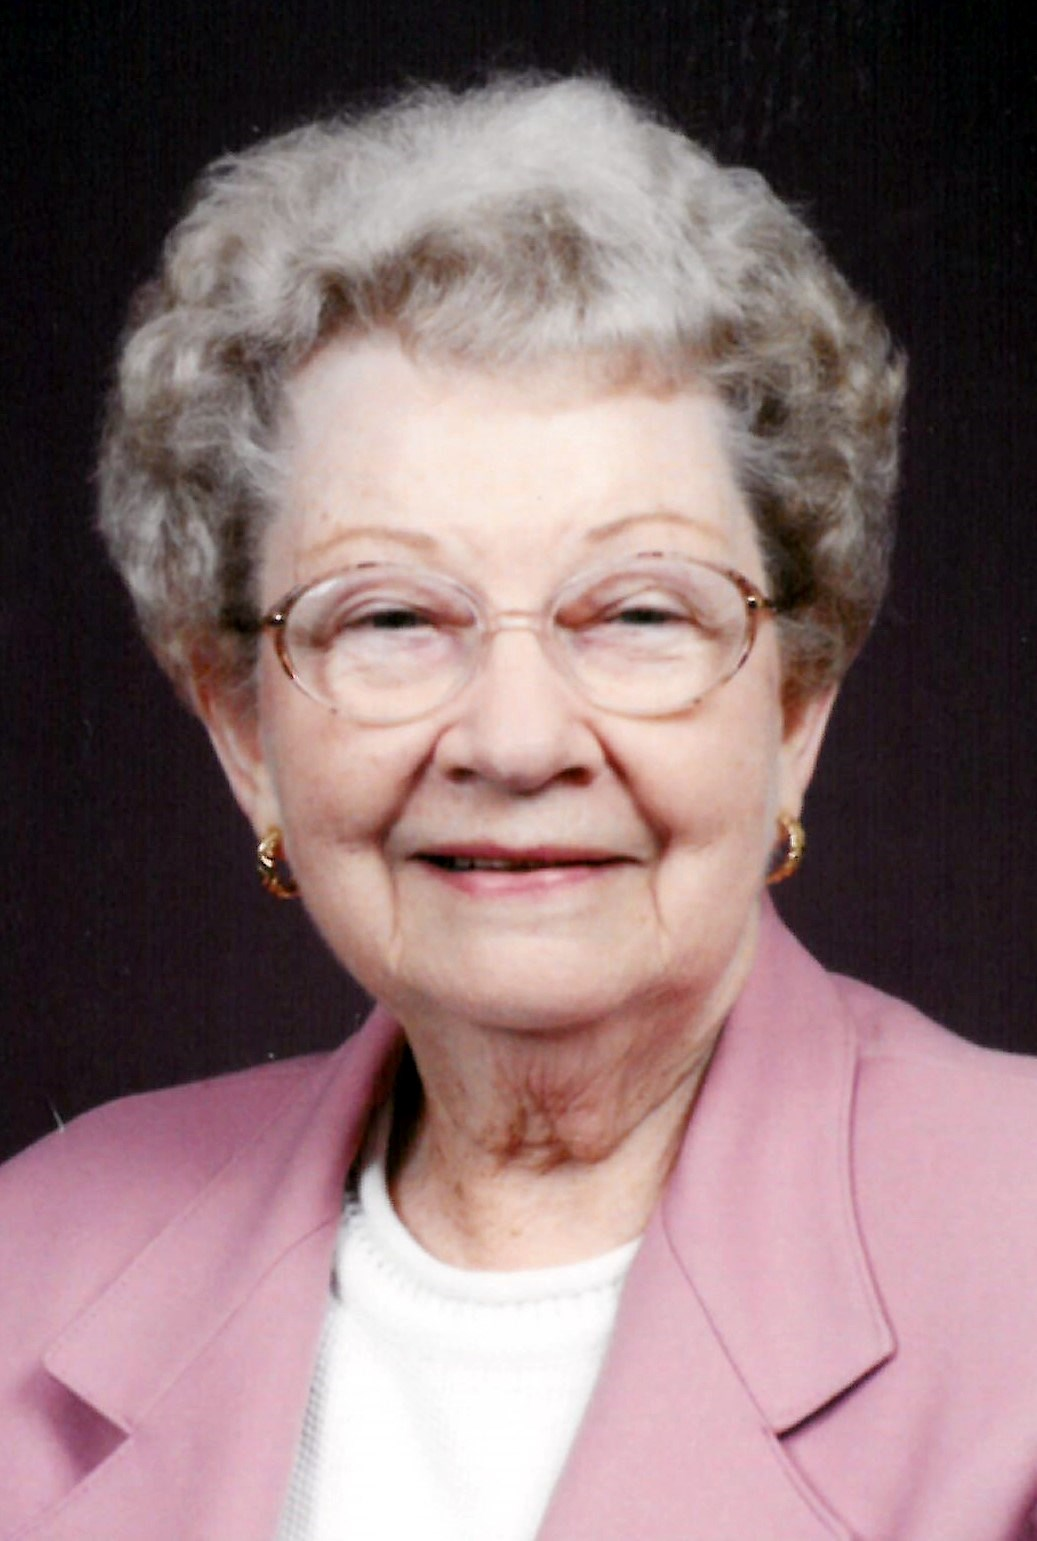 irene johnstonbaugh obituary fort wayne in ForMorrill Motors Fort Wayne Indiana